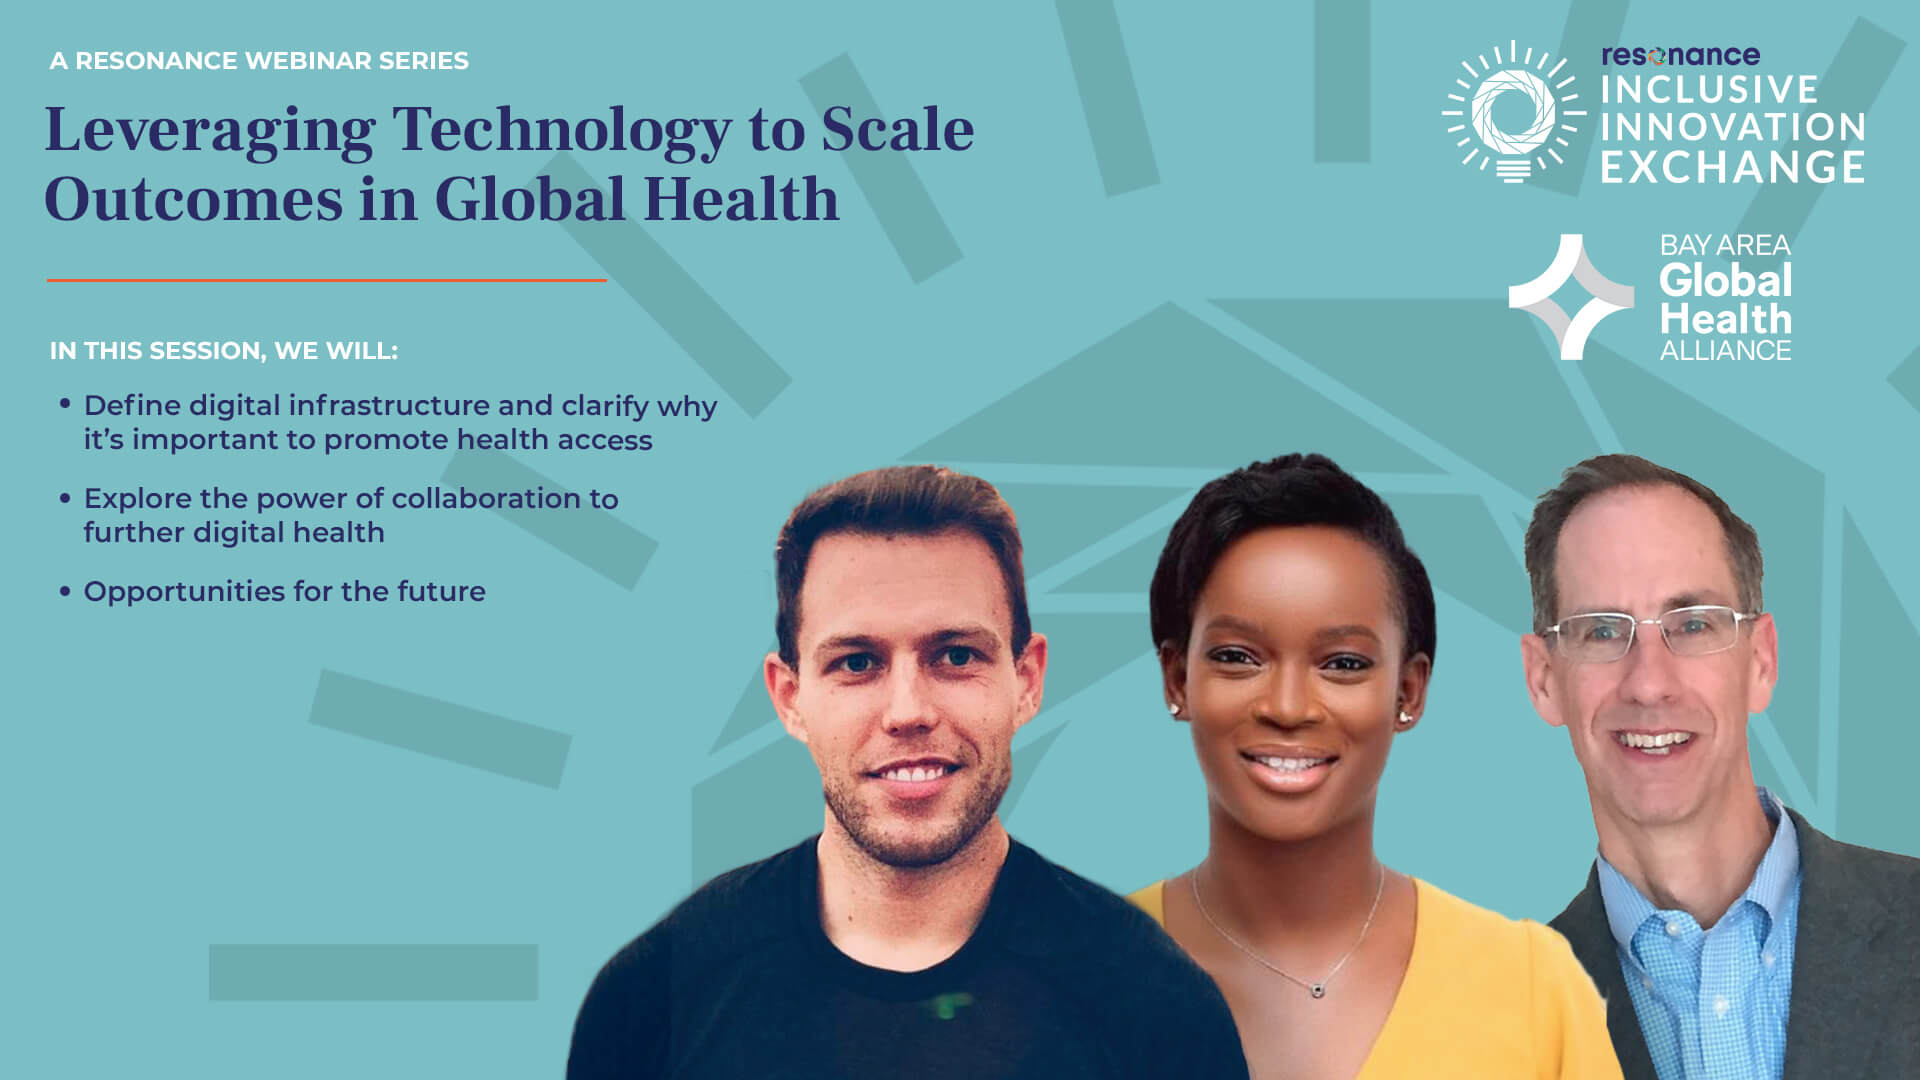 OnDemand - Leveraging Technology to Scale Outcomes in Global Health